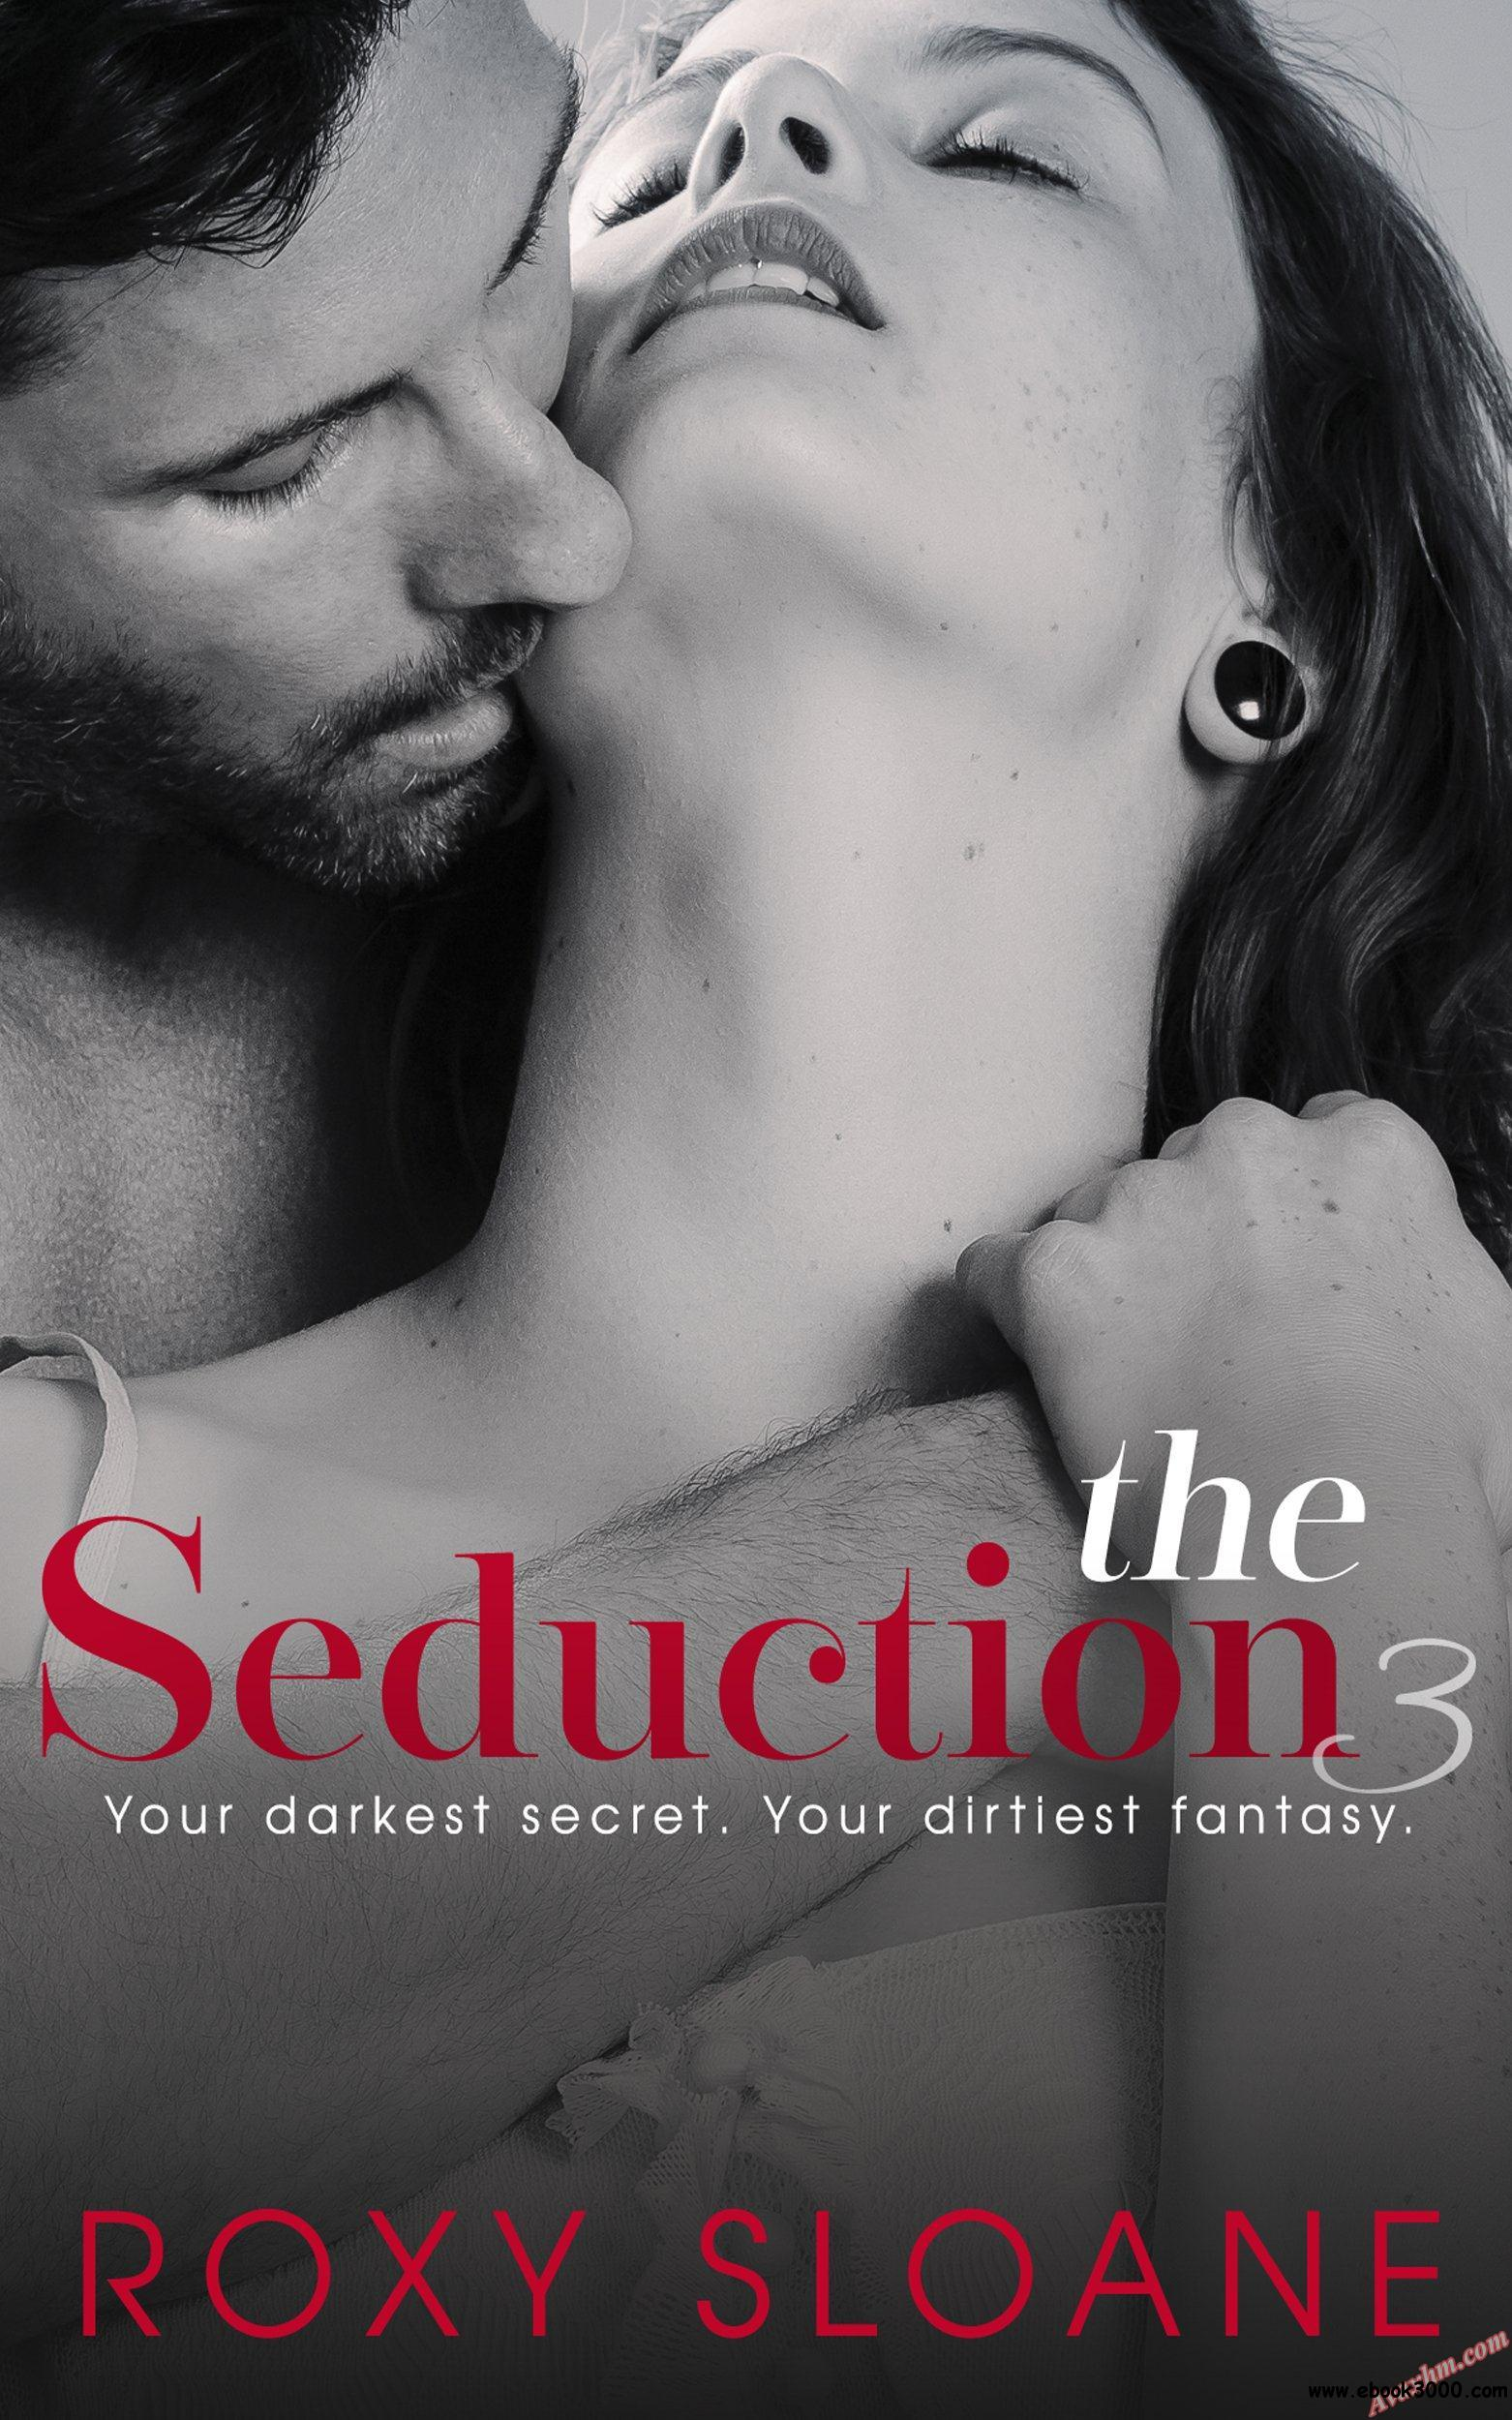 The Seduction 3 free download